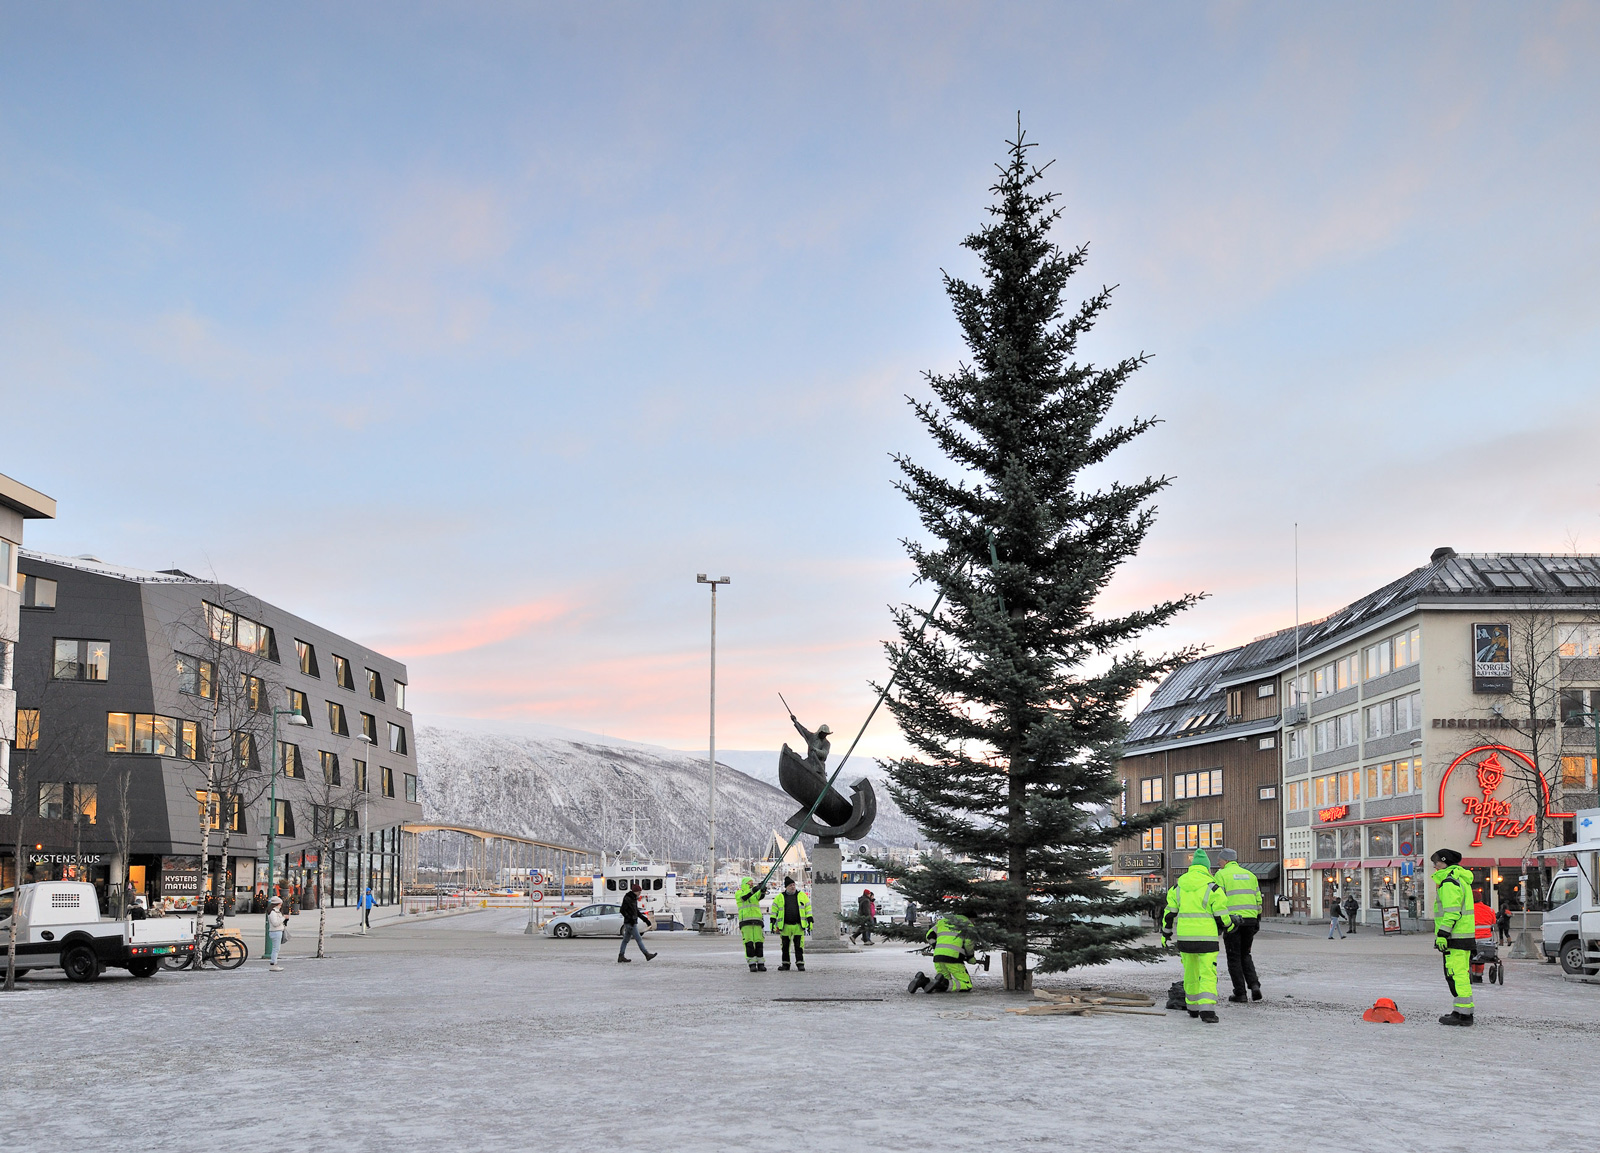 The Christmas tree in Tromso.